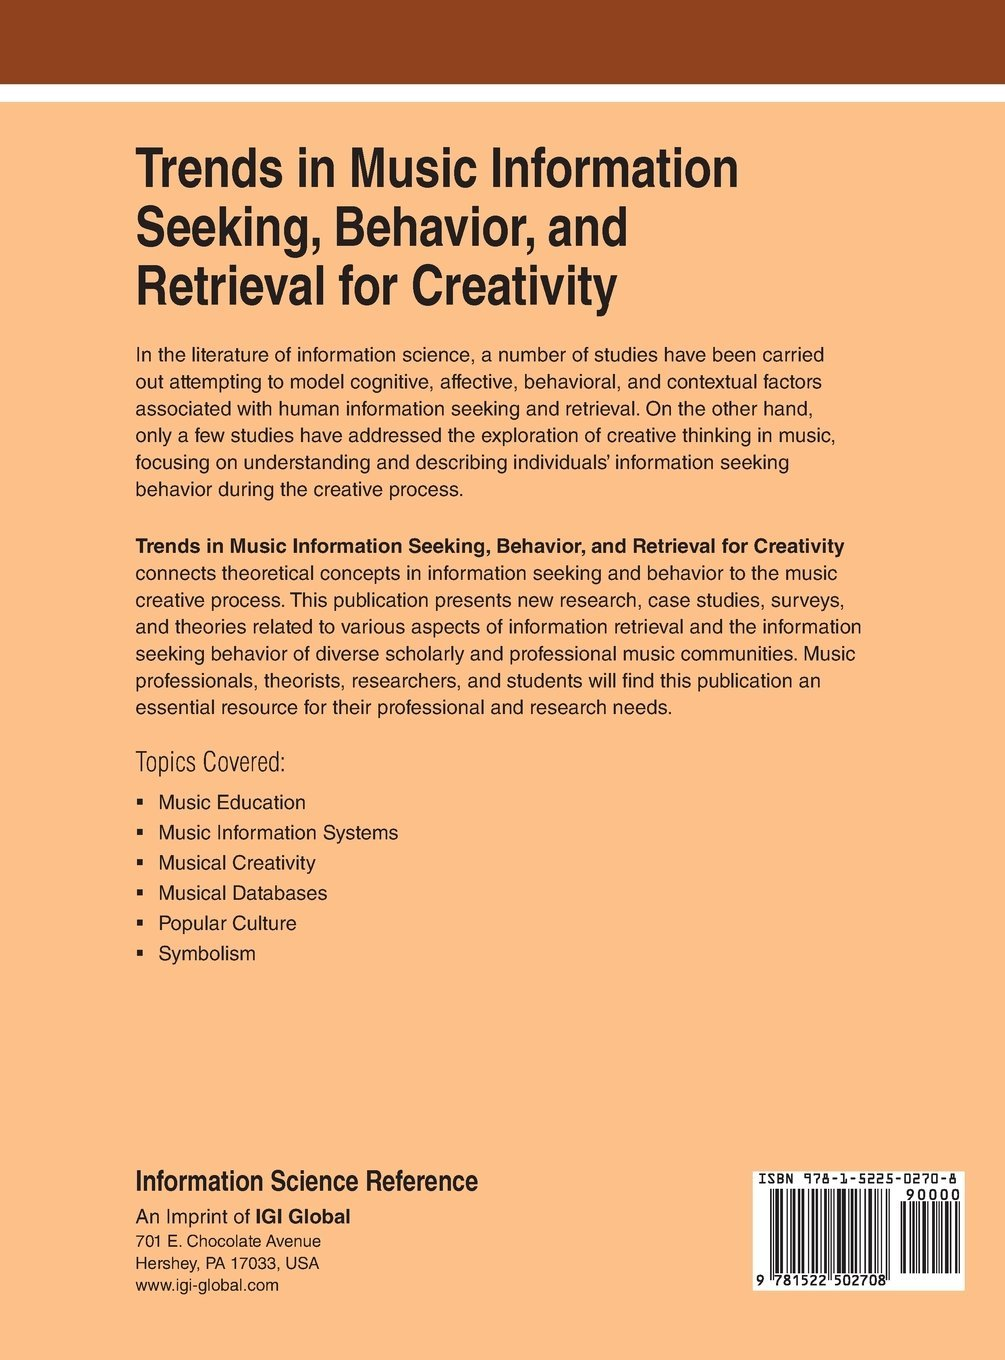 Trends in Music Information Seeking, Behavior, and Retrieval for Creativity (Advances in Multimedia and Interactive Technologies) by Kostagiolas Petros